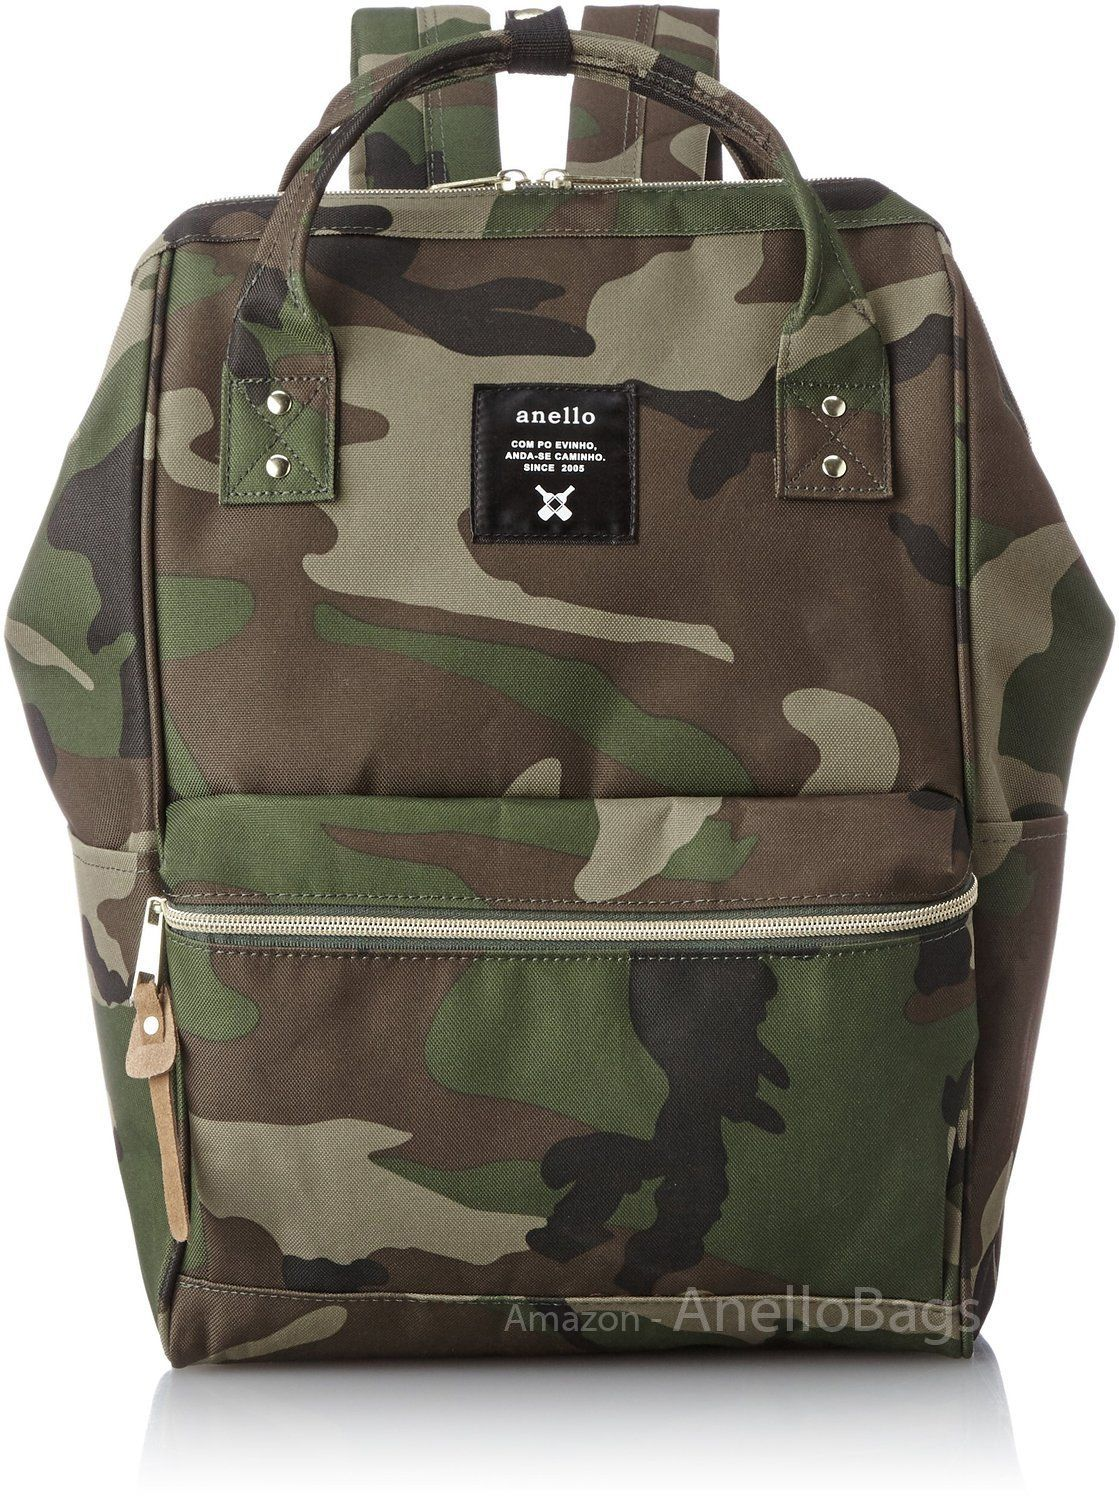 Amazon.com  Japan Anello Backpack Unisex LARGE CAMO Rucksack Waterproof  Canvas School Bag Campus  Sports   Outdoors dc3fcd300f679